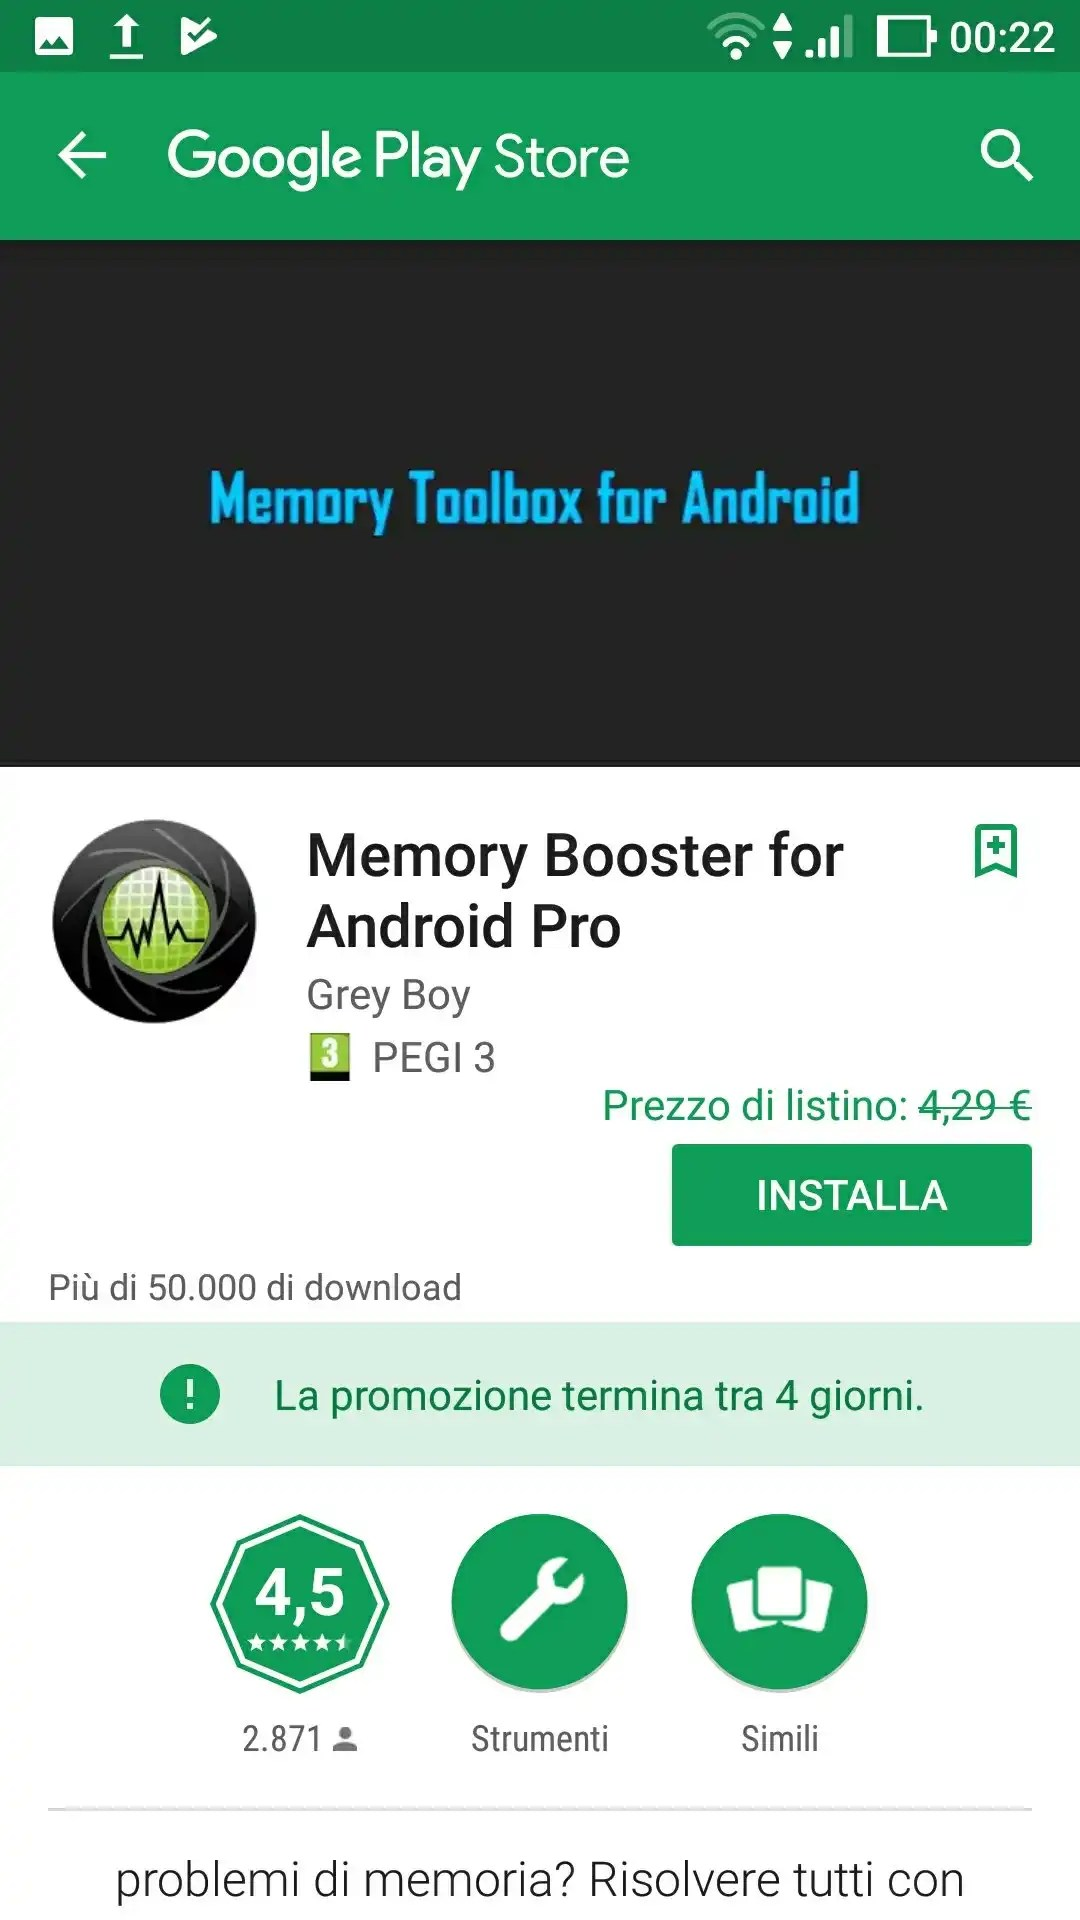 Memory Booster Pro for Android (free instead of 4.29€)